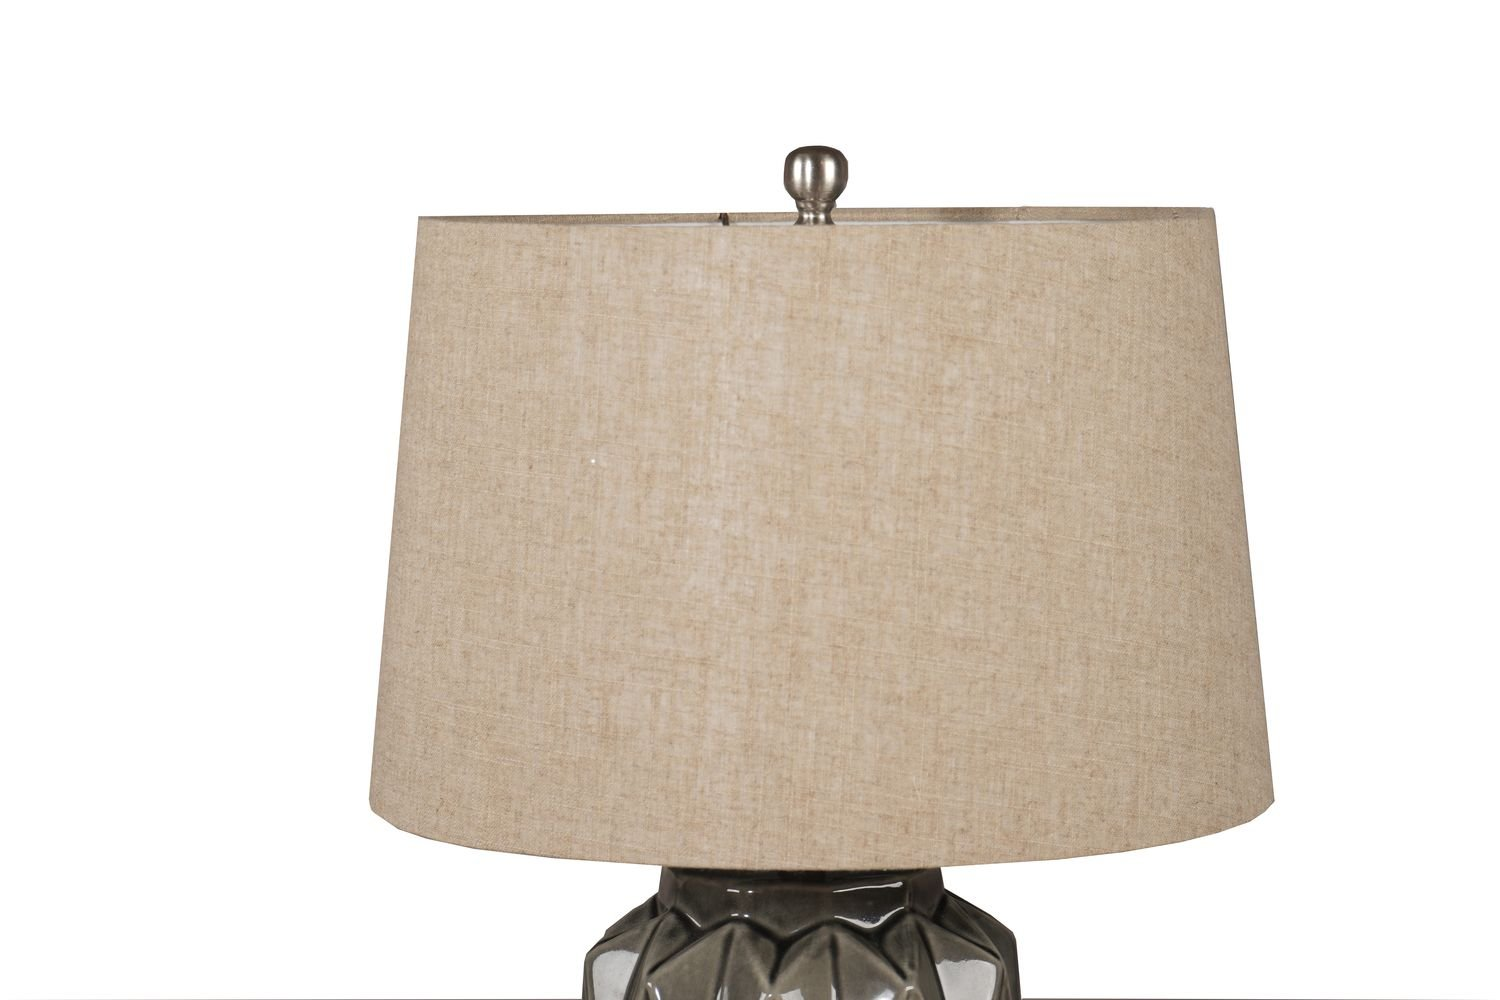 Acantho Grey Ceramic Lamp With Linen Shade - Image 2